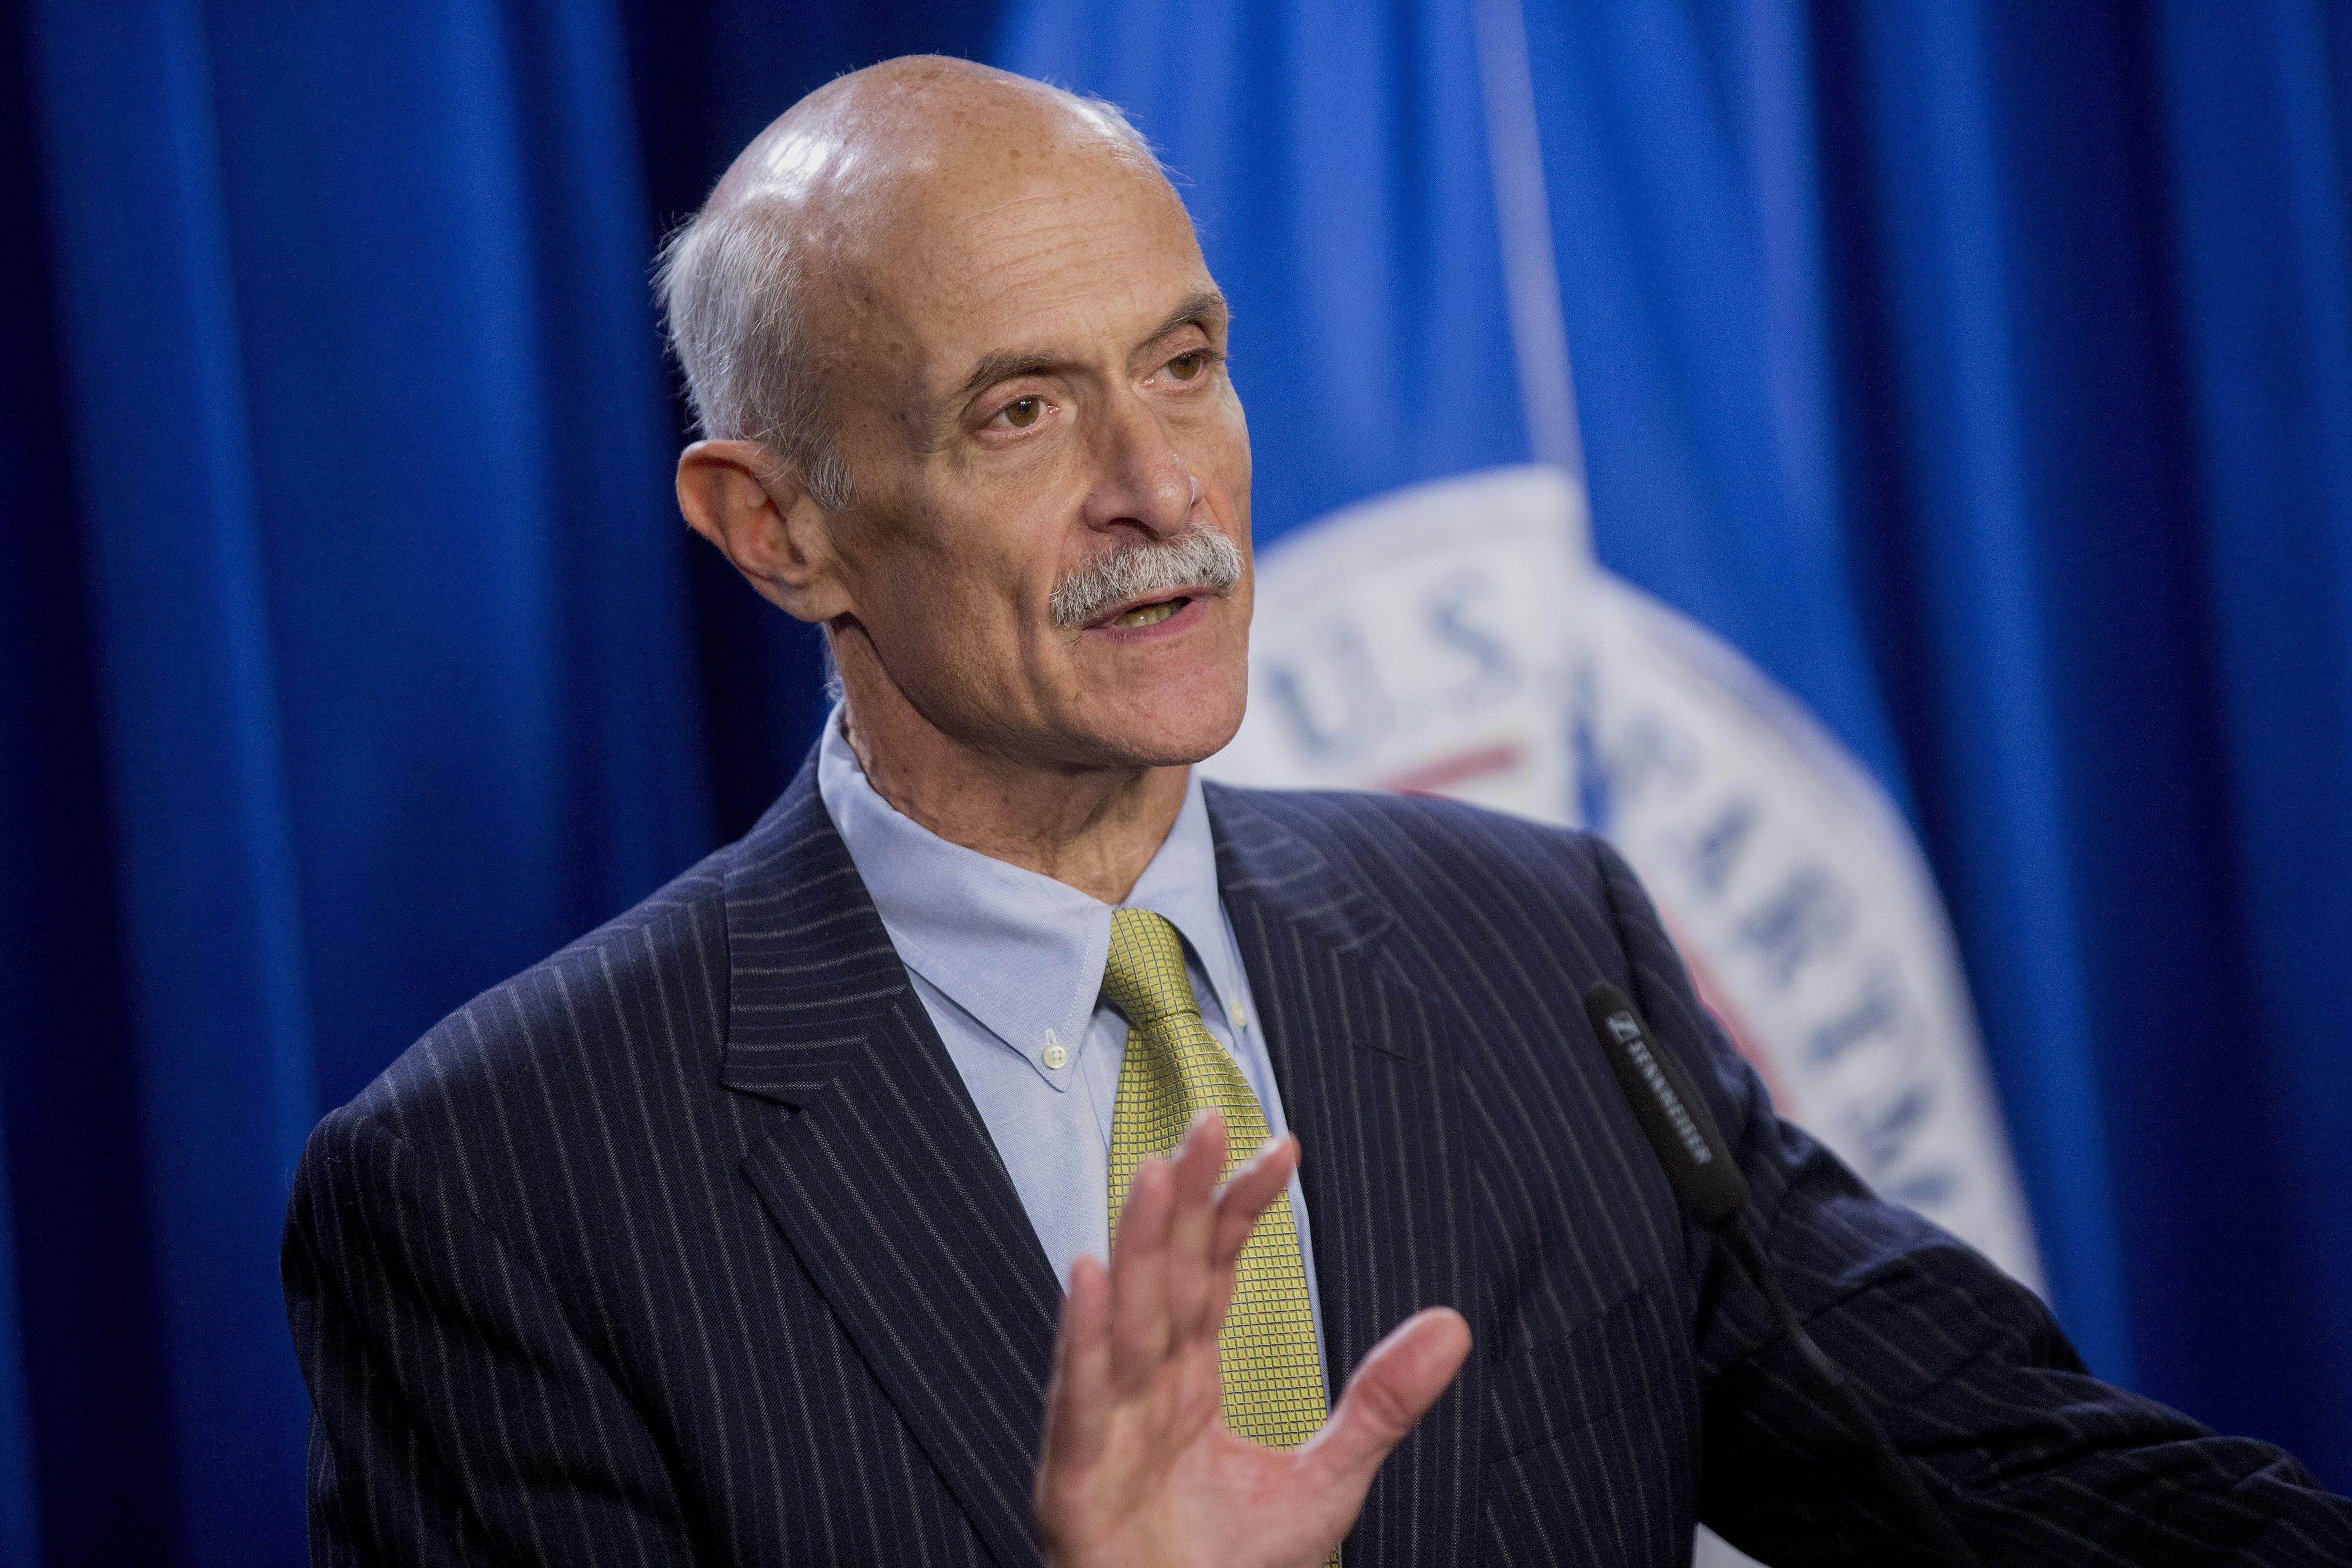 Michael Chertoff, former U.S. secretary of Homeland Security (DHS), speaks during a news conference with Jeh Johnson, U.S. secretary of Homeland Security (DHS), and former secretaries of Homeland Security Tom Ridge, not pictured, at the U.S. Immigration and Customs Enforcement (ICE) in Washington, D.C., U.S., on Wednesday, Feb. 25, 2015. Bloomberg—Bloomberg via Getty Images